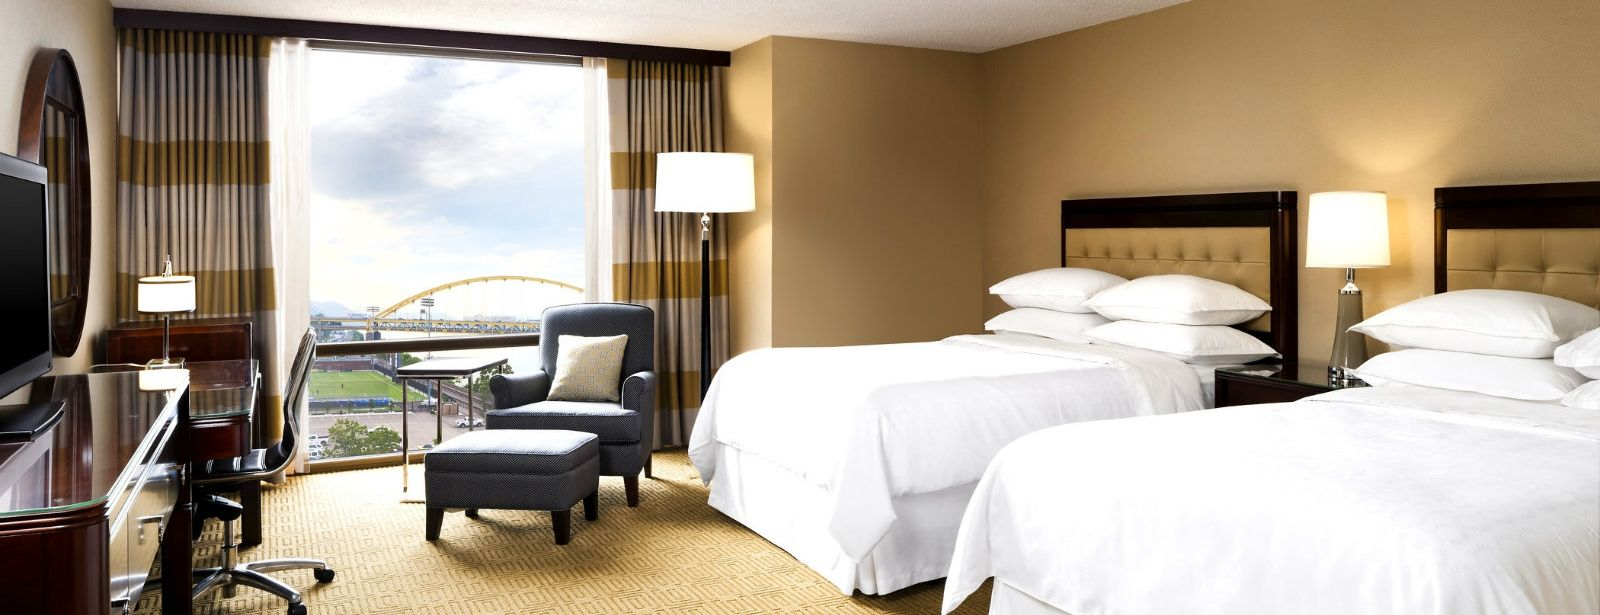 Deluxe River Guest Room | Sheraton Station Square Hotel